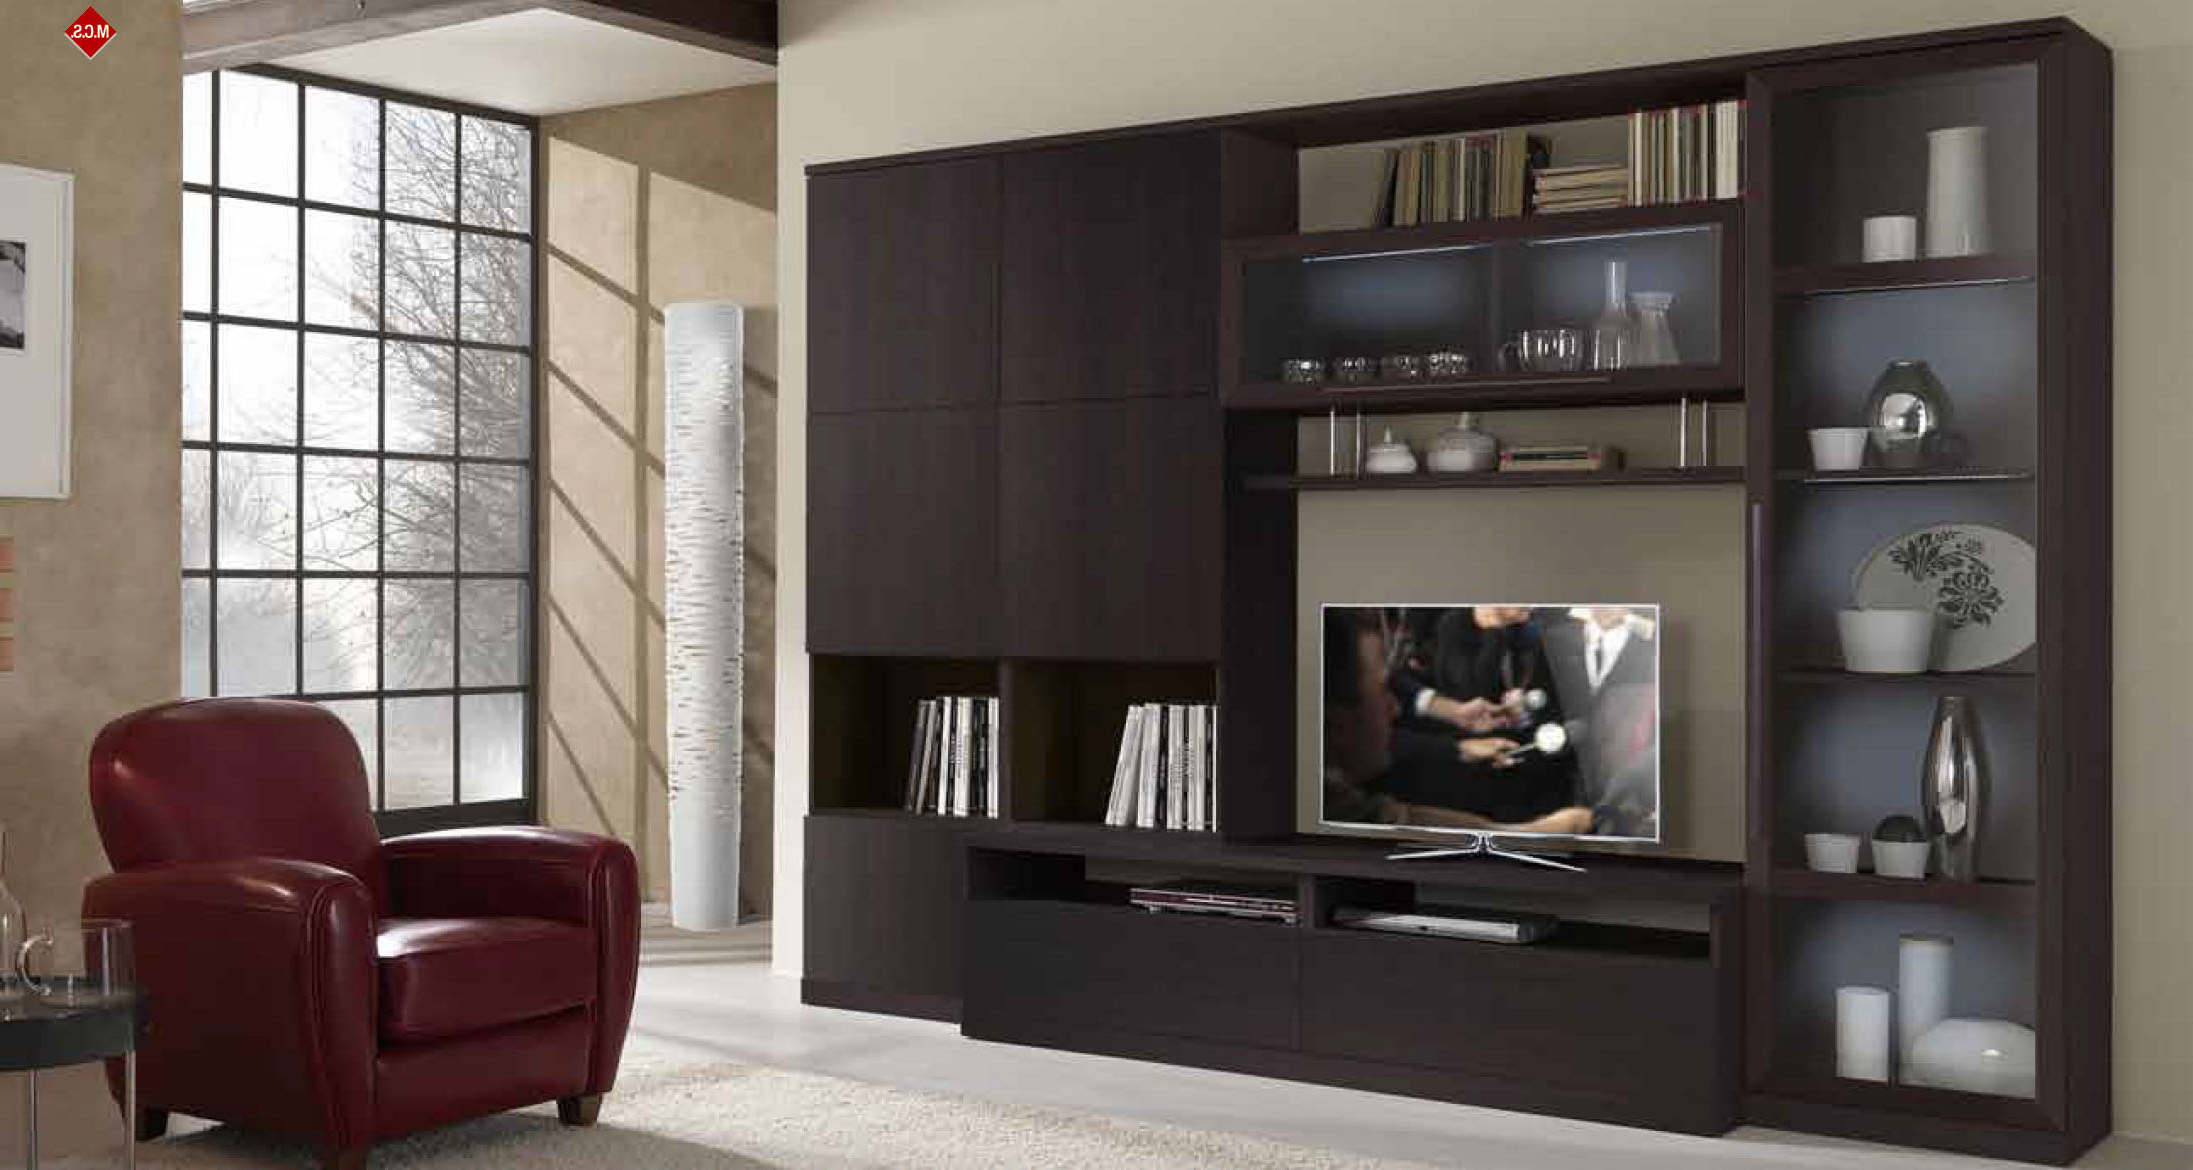 Widely Used Tv Cabinets And Wall Units For Tv Cabinets And Wall Units – Image Cabinets And Shower Mandra Tavern (View 4 of 20)